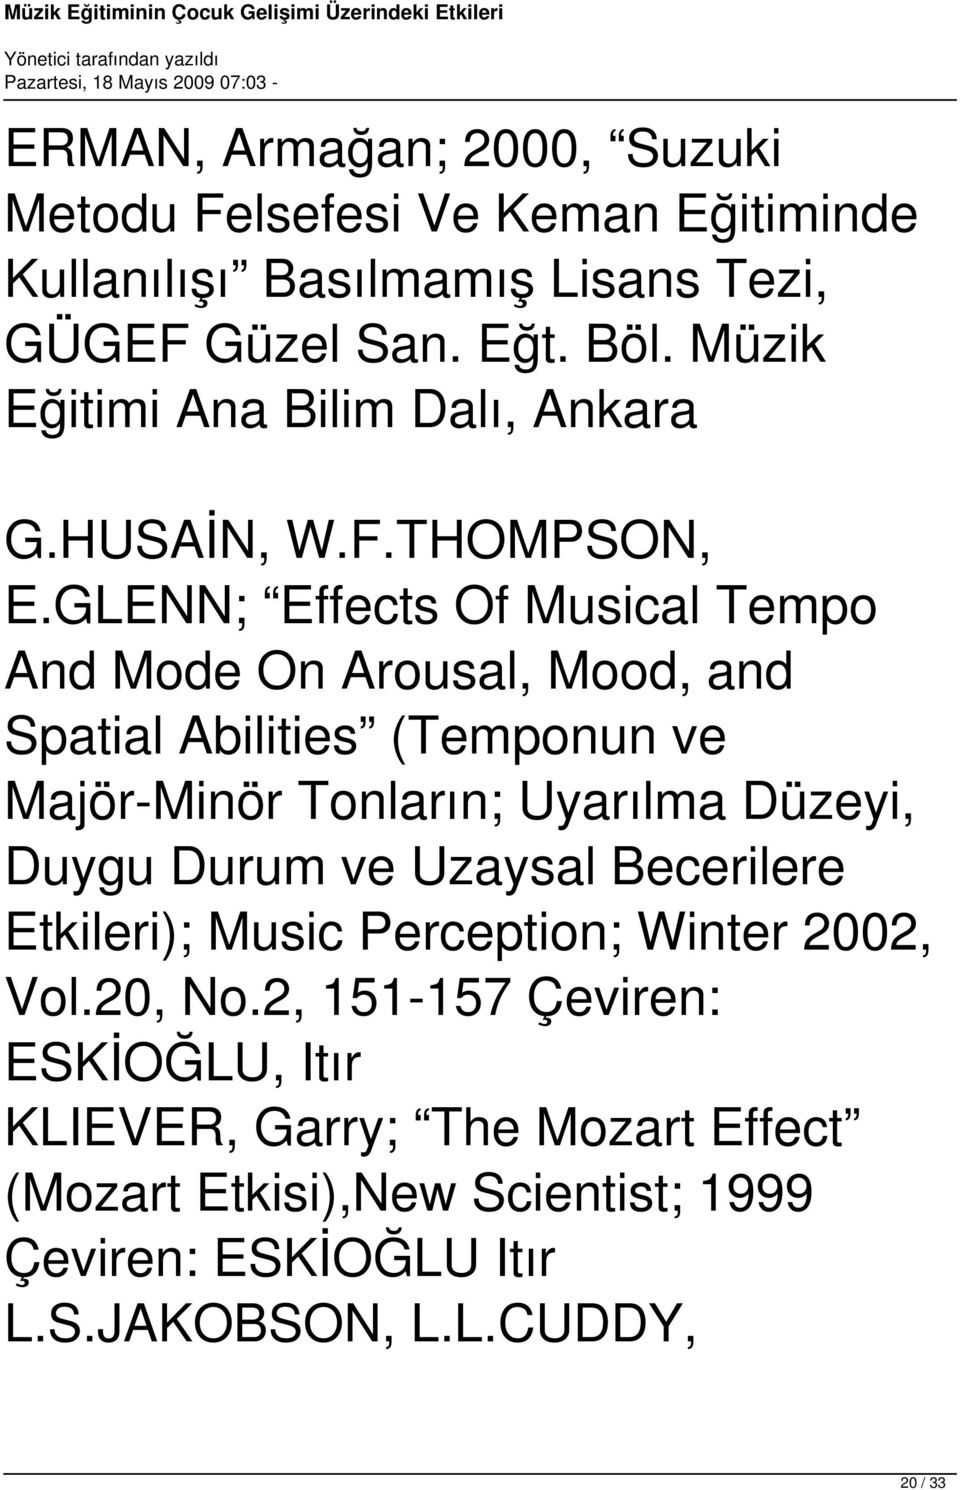 GLENN; Effects Of Musical Tempo And Mode On Arousal, Mood, and Spatial Abilities (Temponun ve Majör-Minör Tonların; Uyarılma Düzeyi, Duygu